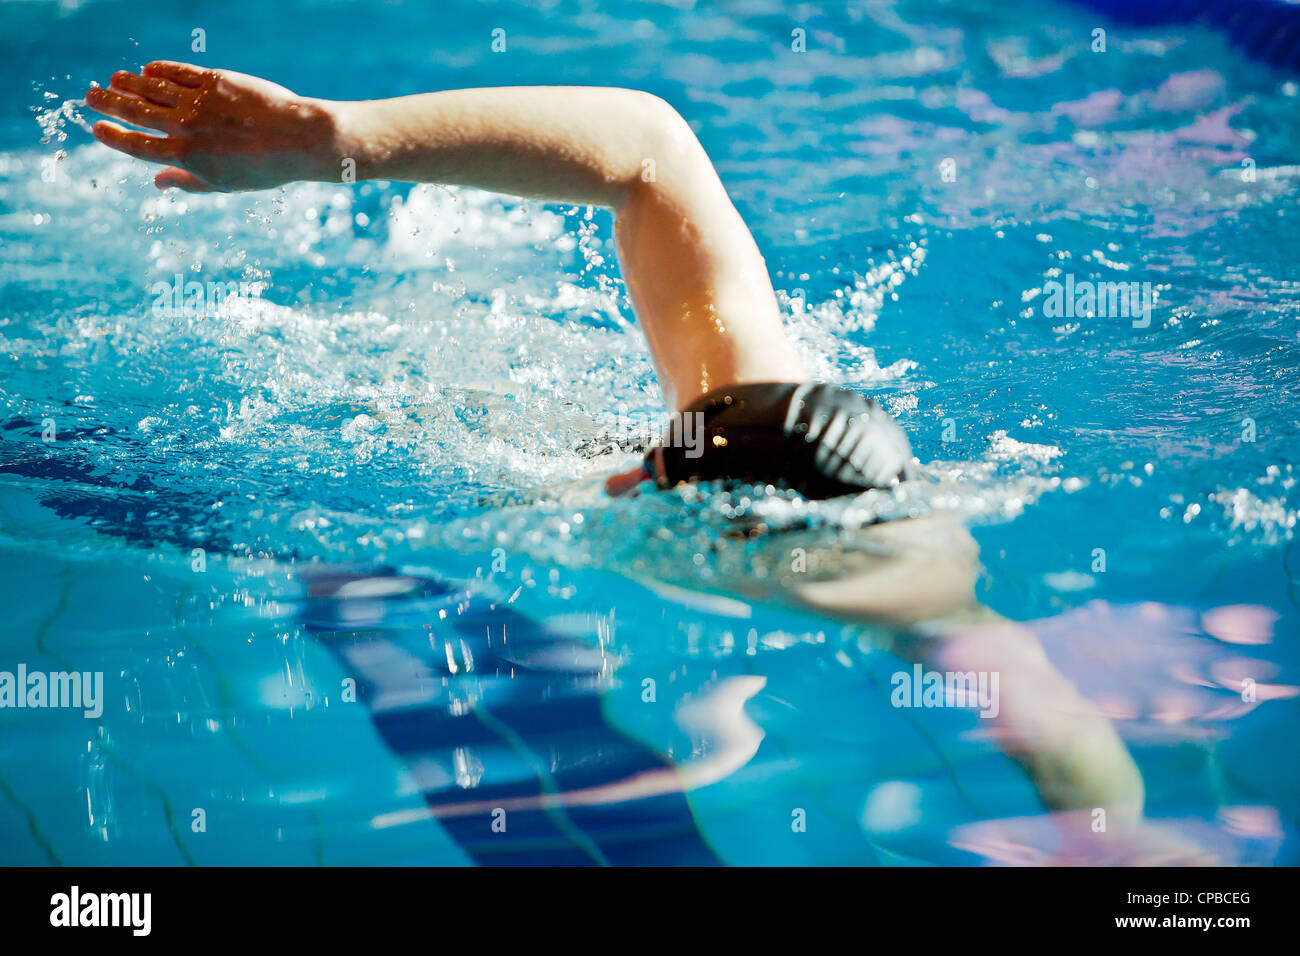 An athlete - swimmer - Stock Image